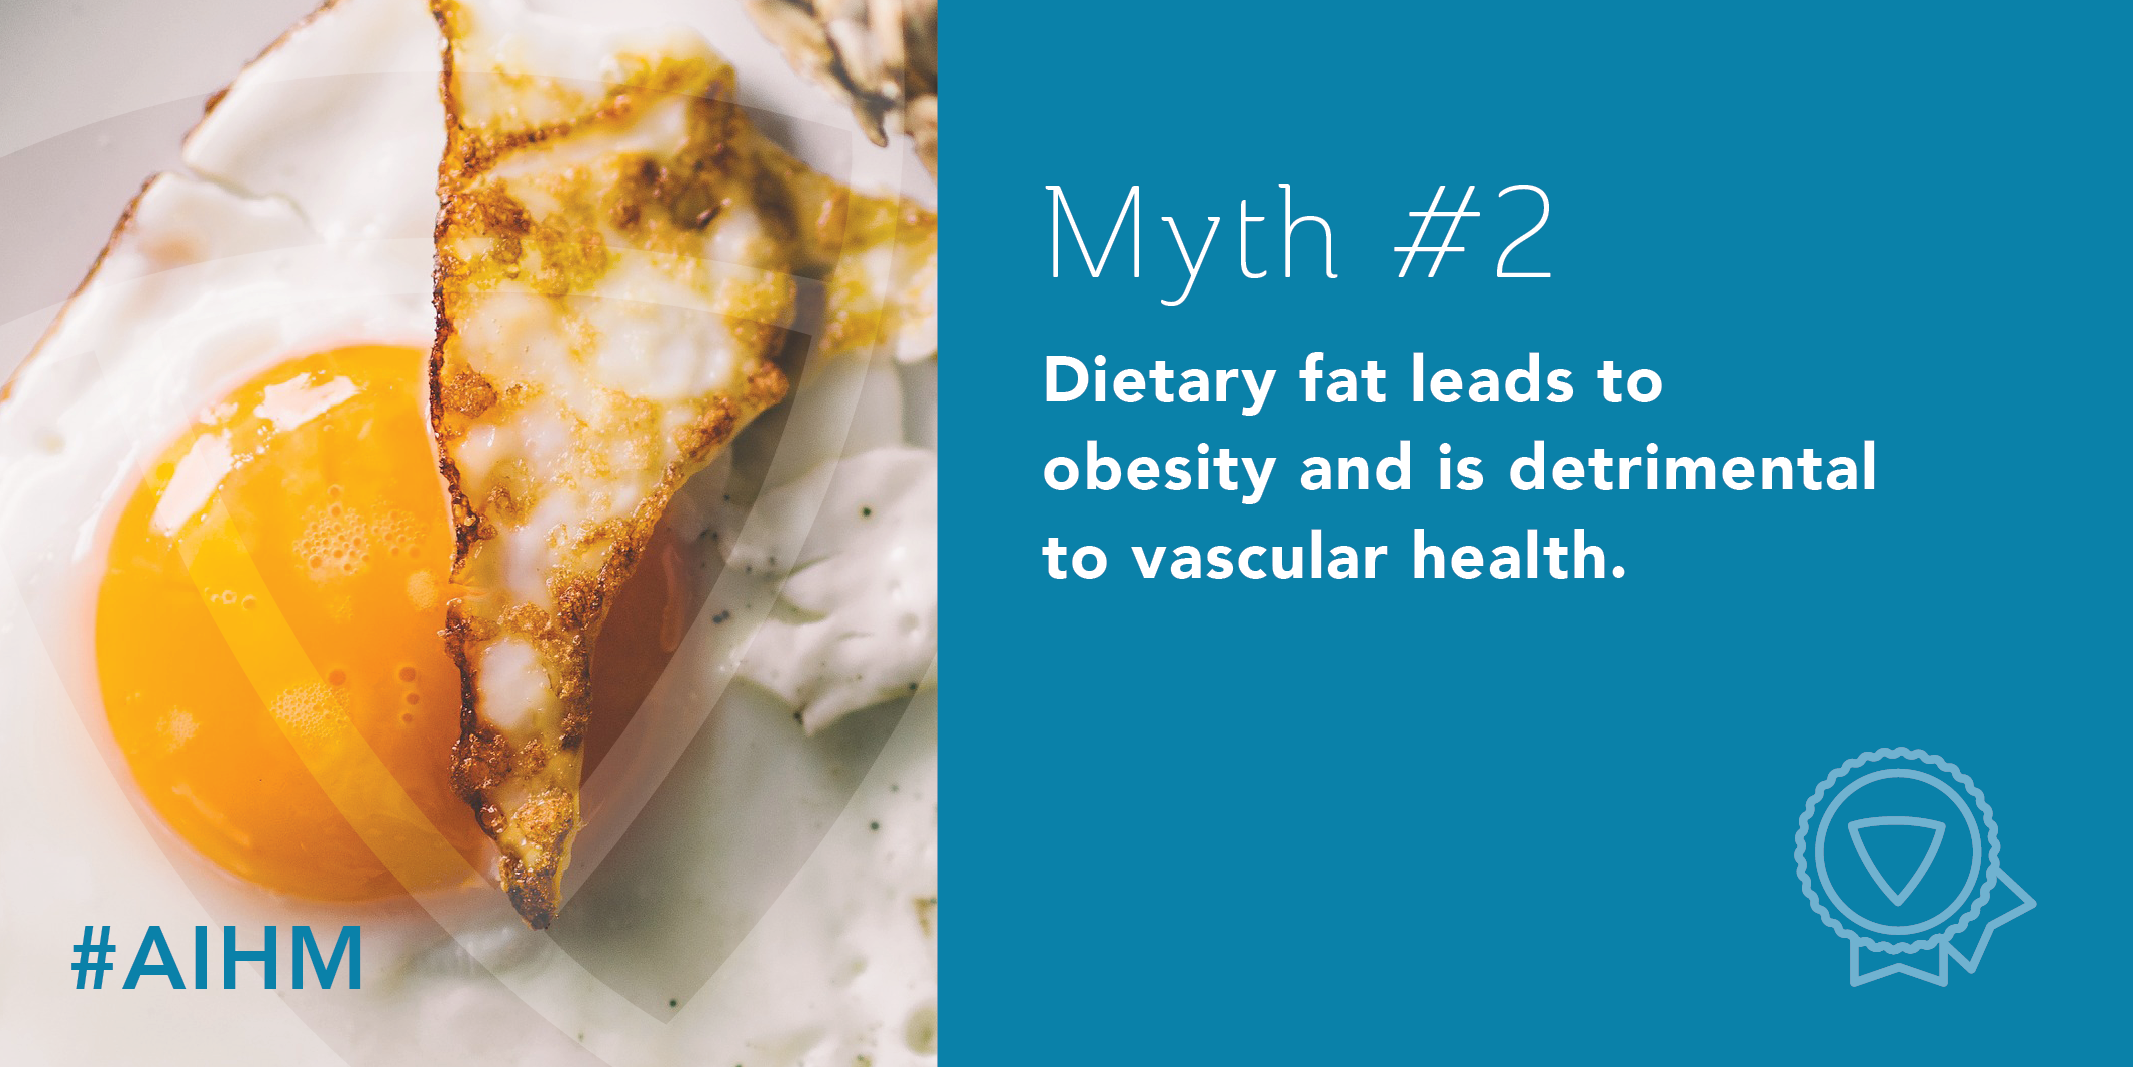 Myth #2: Dietary fat leads to obesity and is detrimental to vascular health.